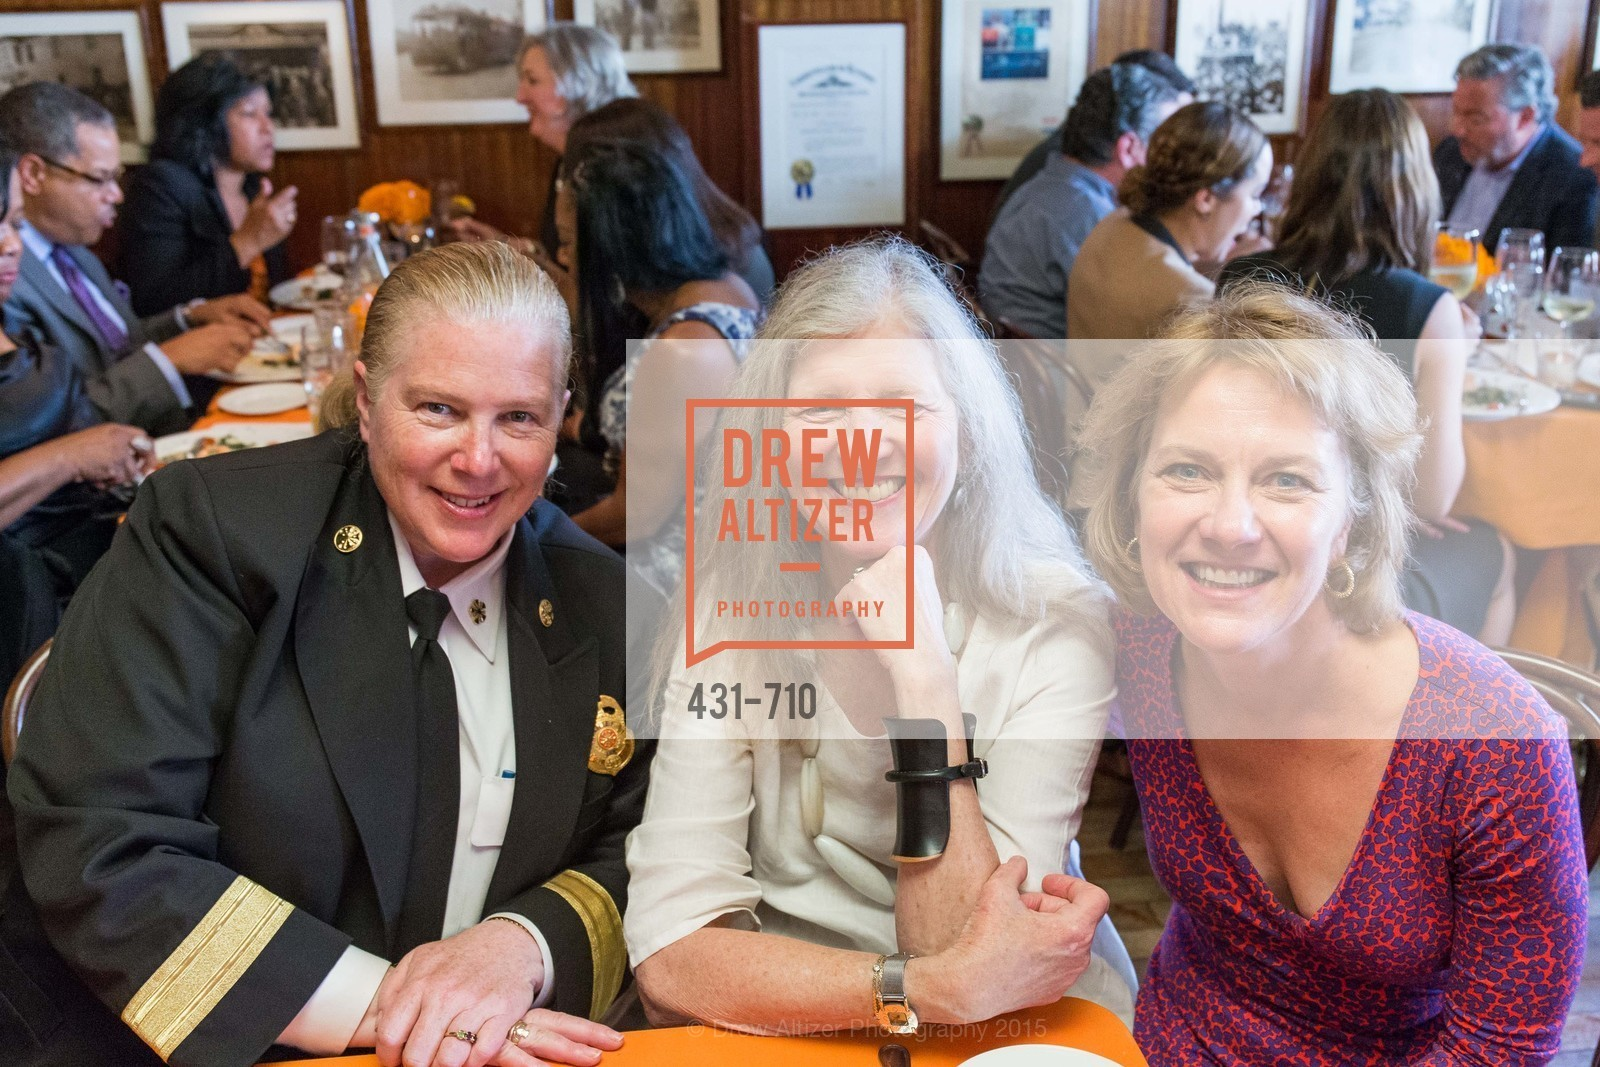 Joanne Hayes White, Leah Garchrik, Lee Gregory, 3-RING LUNCH CELEBRATION Honoring RENEL BROOKS-MOON, US, June 8th, 2015,Drew Altizer, Drew Altizer Photography, full-service agency, private events, San Francisco photographer, photographer california